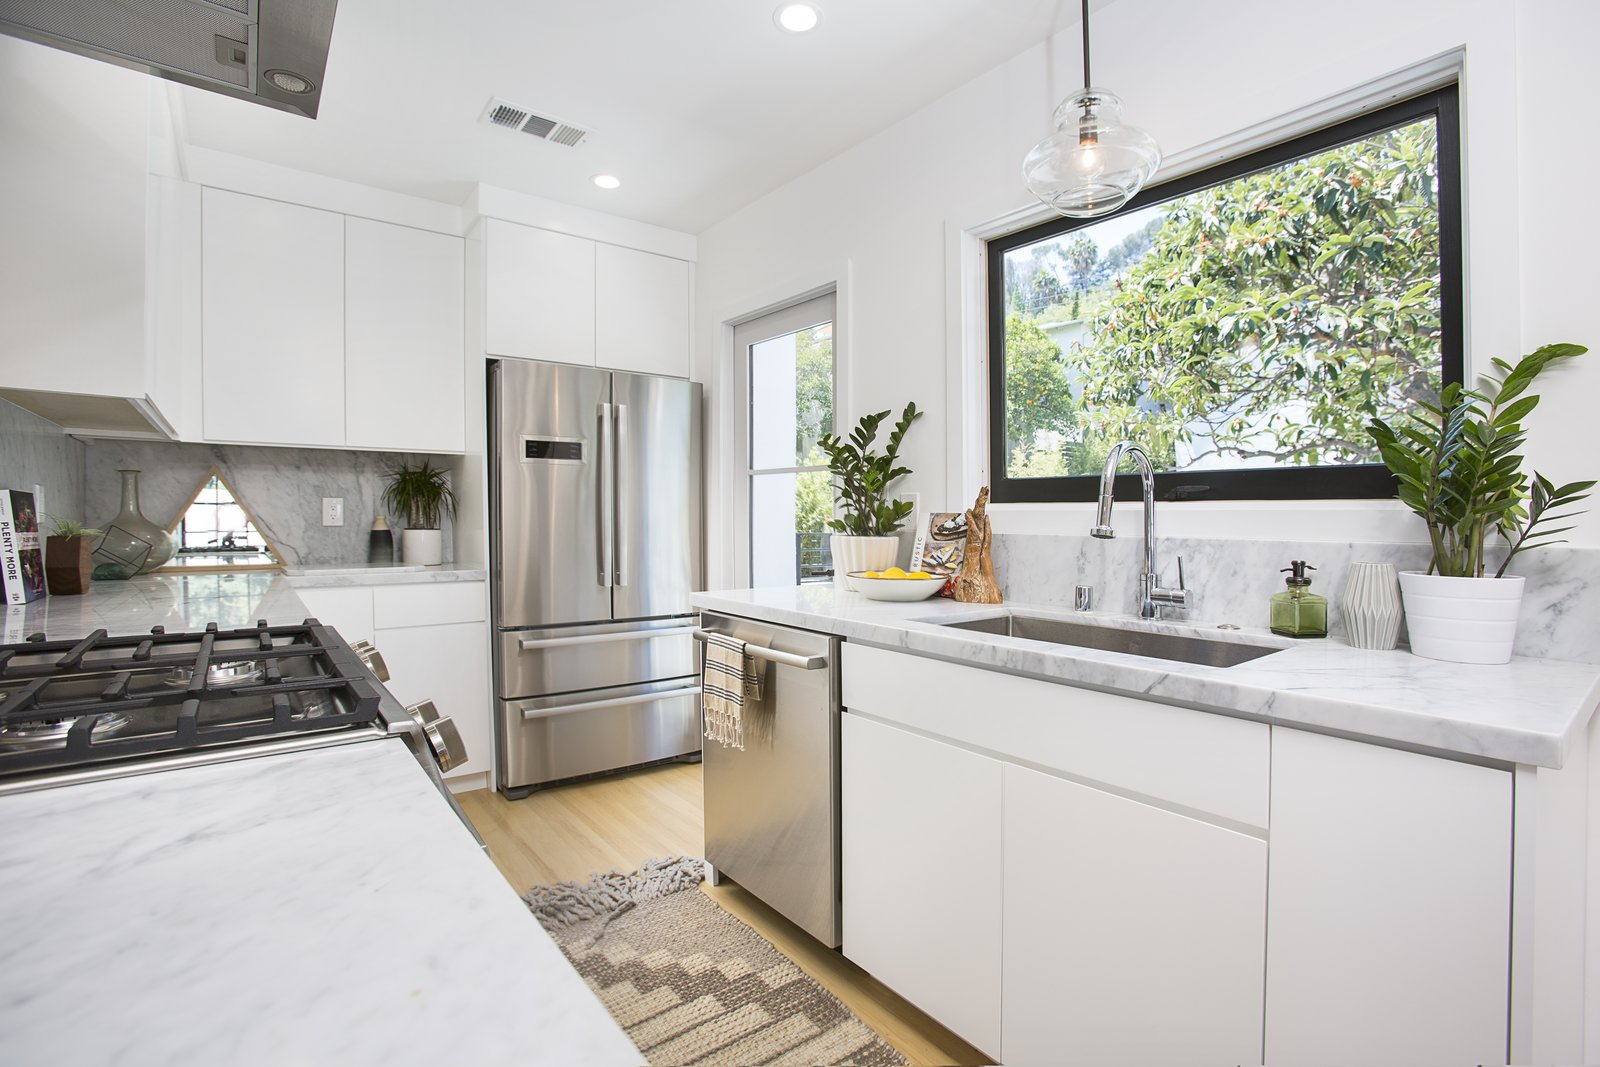 Kitchen, White, Marble, Wood, Ceiling, Recessed, Pendant, Light Hardwood, Stone Slab, Refrigerator, Dishwasher, Range, Range Hood, and Undermount  Best Kitchen Refrigerator Undermount Pendant Recessed Stone Slab Photos from Silverlake on Riverside Terrace